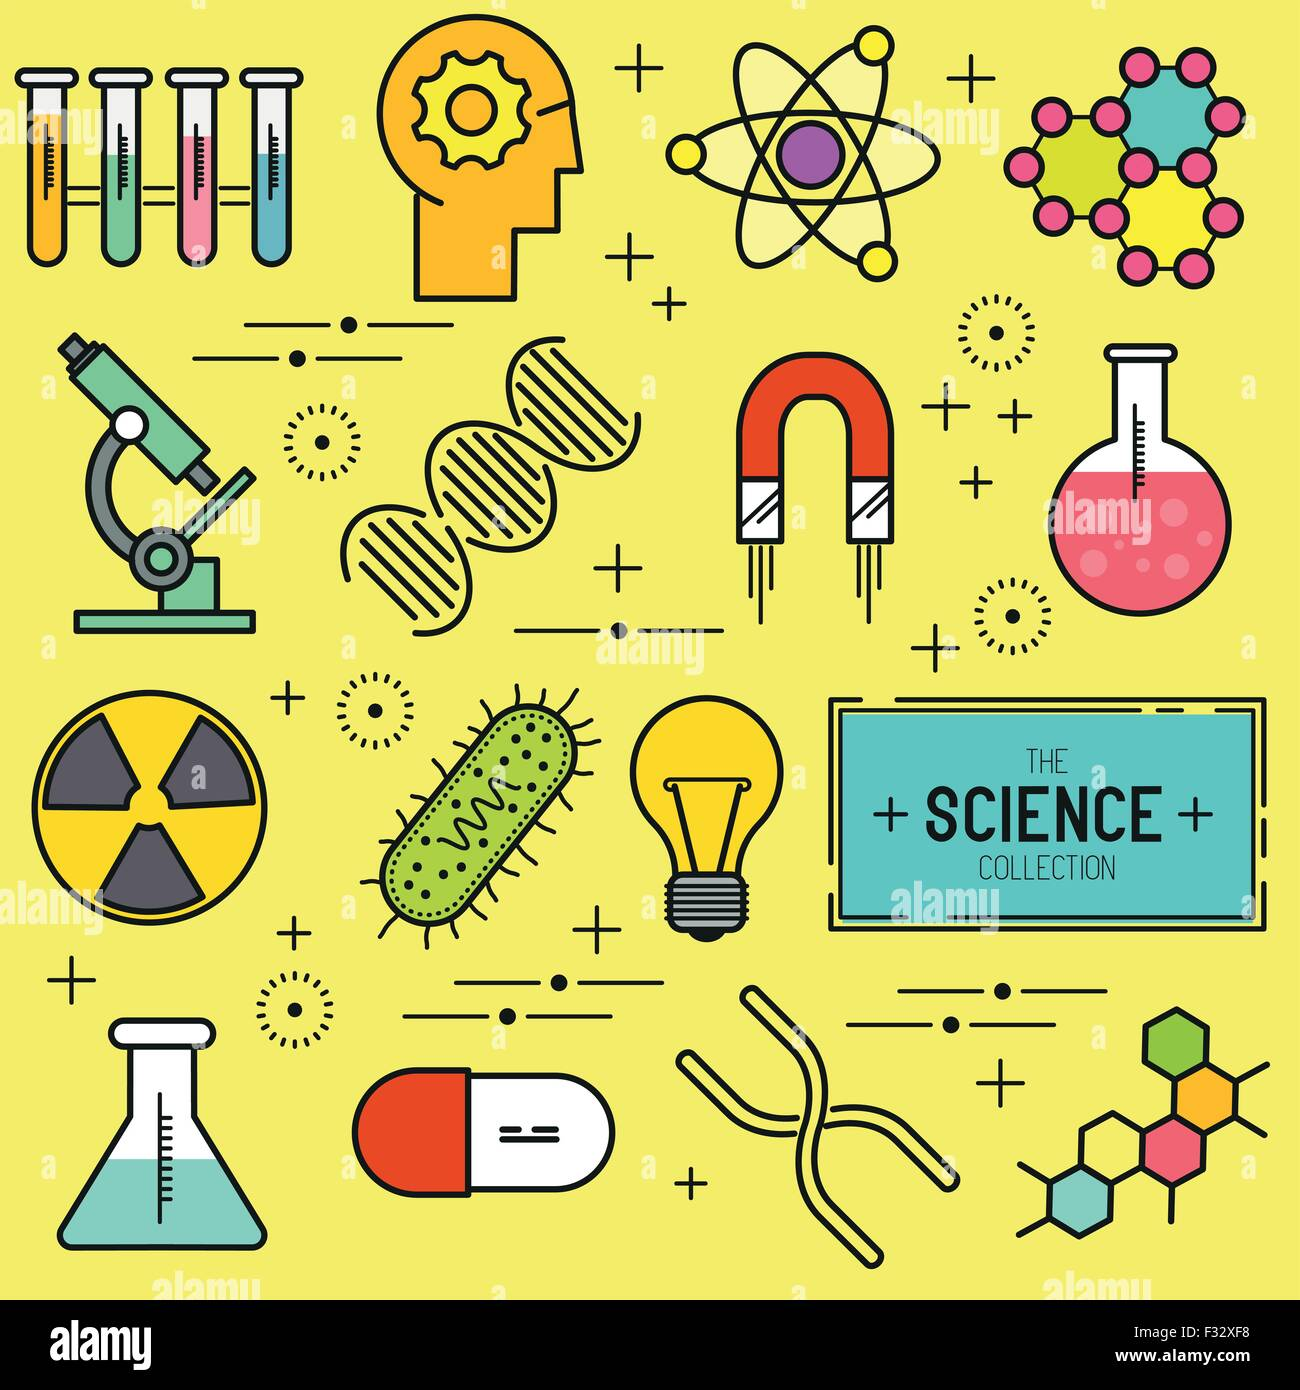 science vector icon set a collection of science themed line icons stock vector image art alamy https www alamy com stock photo science vector icon set a collection of science themed line icons 87960524 html